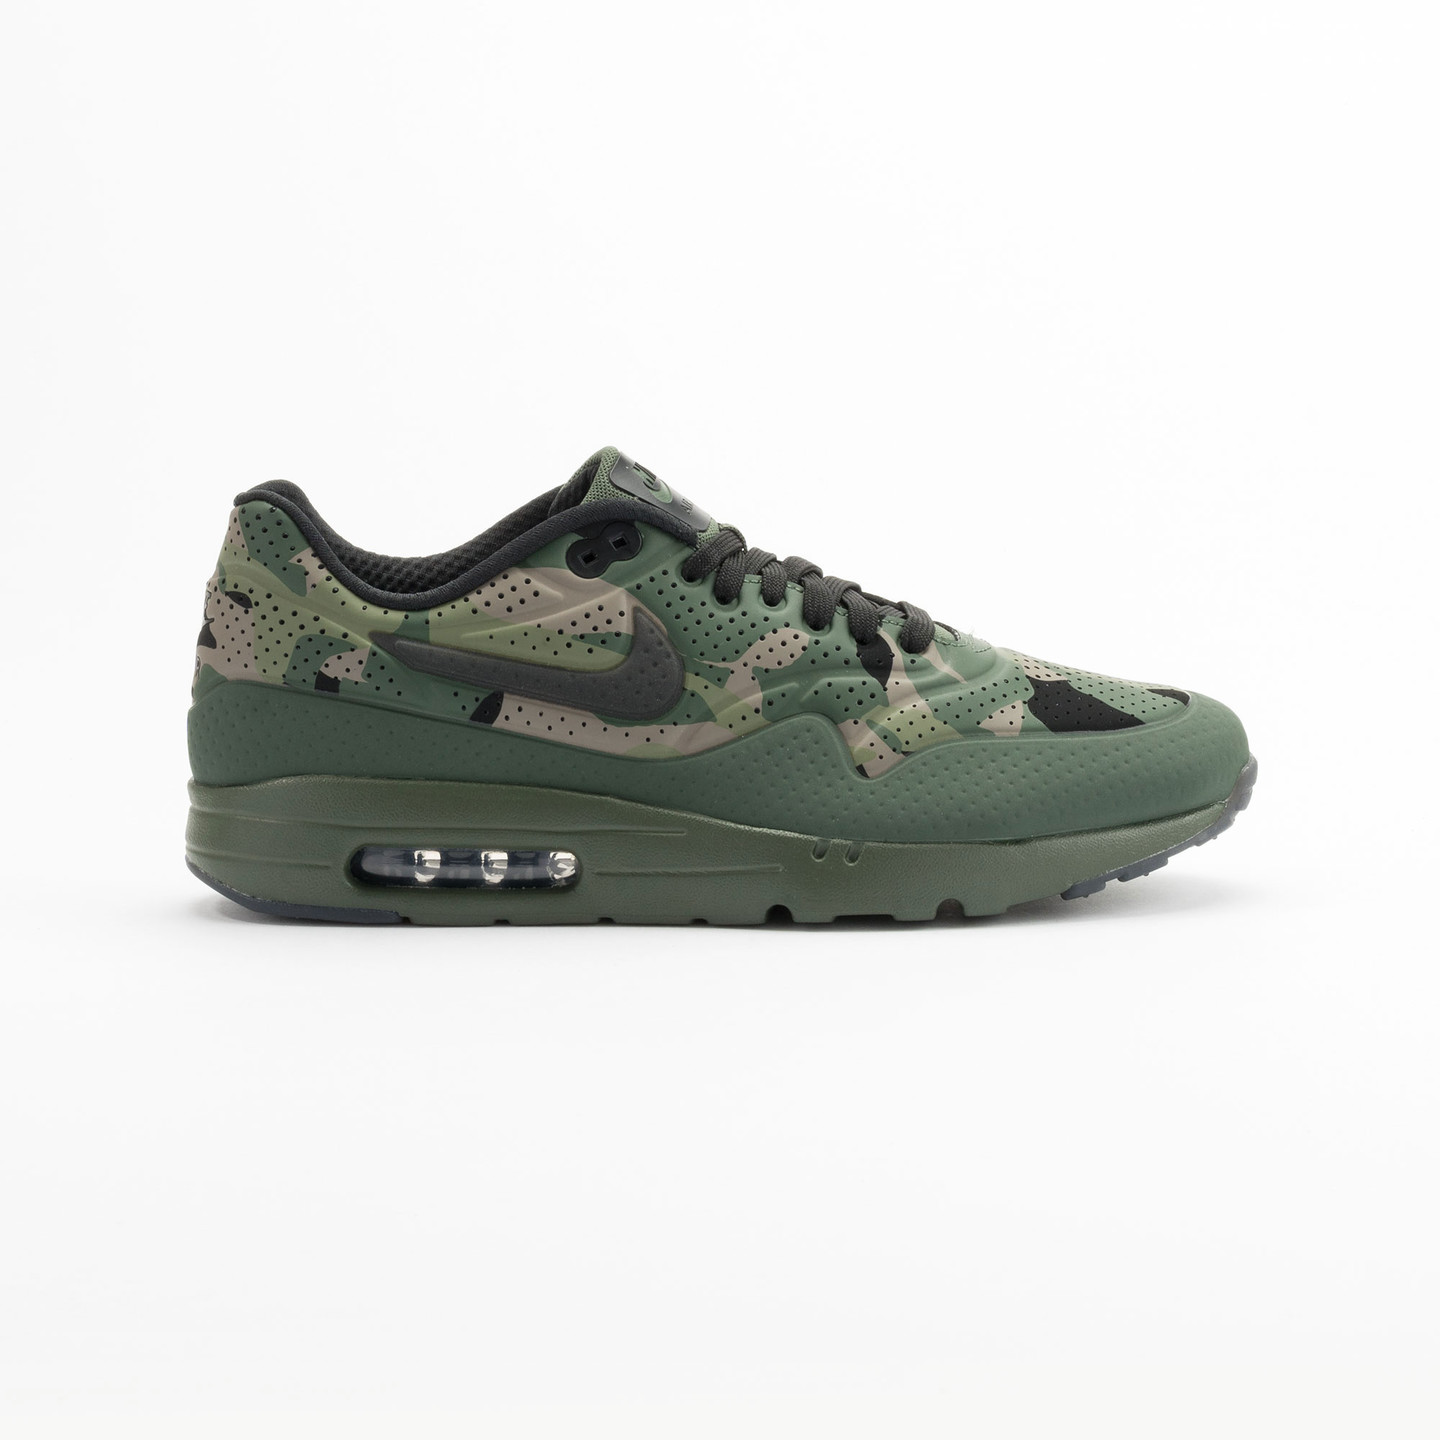 Nike Air Max 1 Ultra Moire Print Camouflage / Carbon Green 806851-300-46